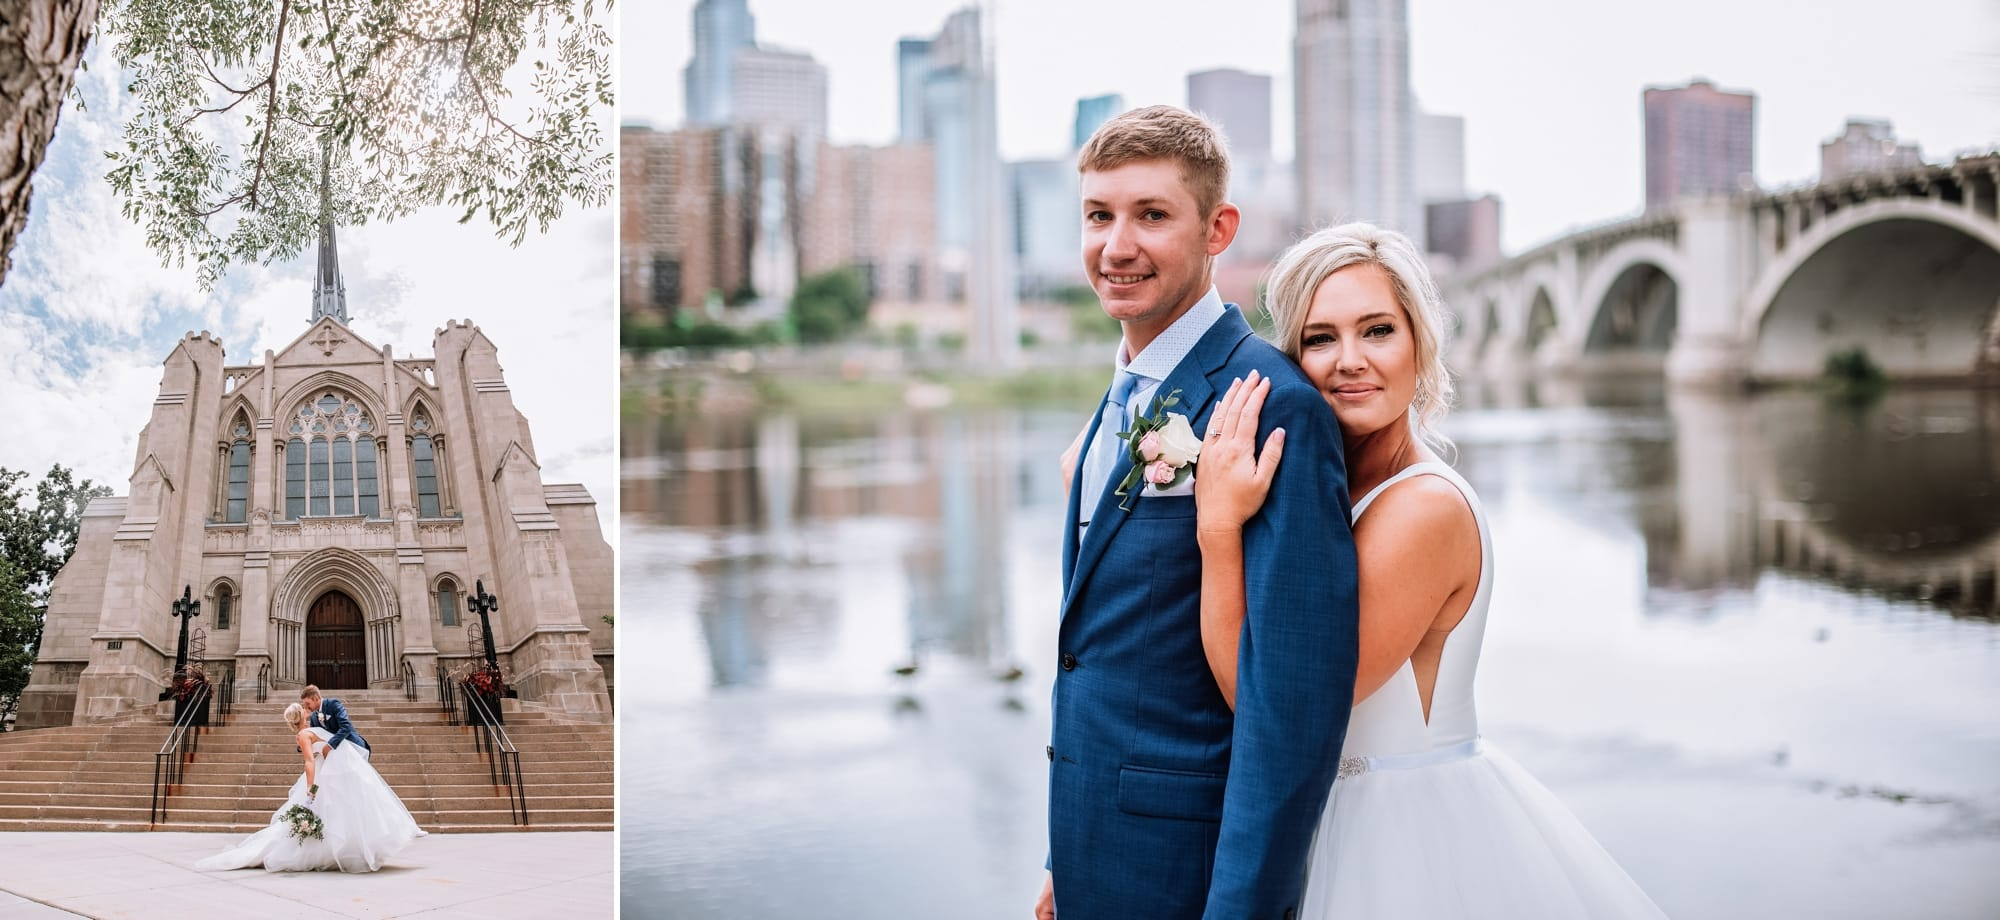 Wedding photos for Chelsea and Sawyer at Hennepin Avenue United Methodist Church in Minneapolis.